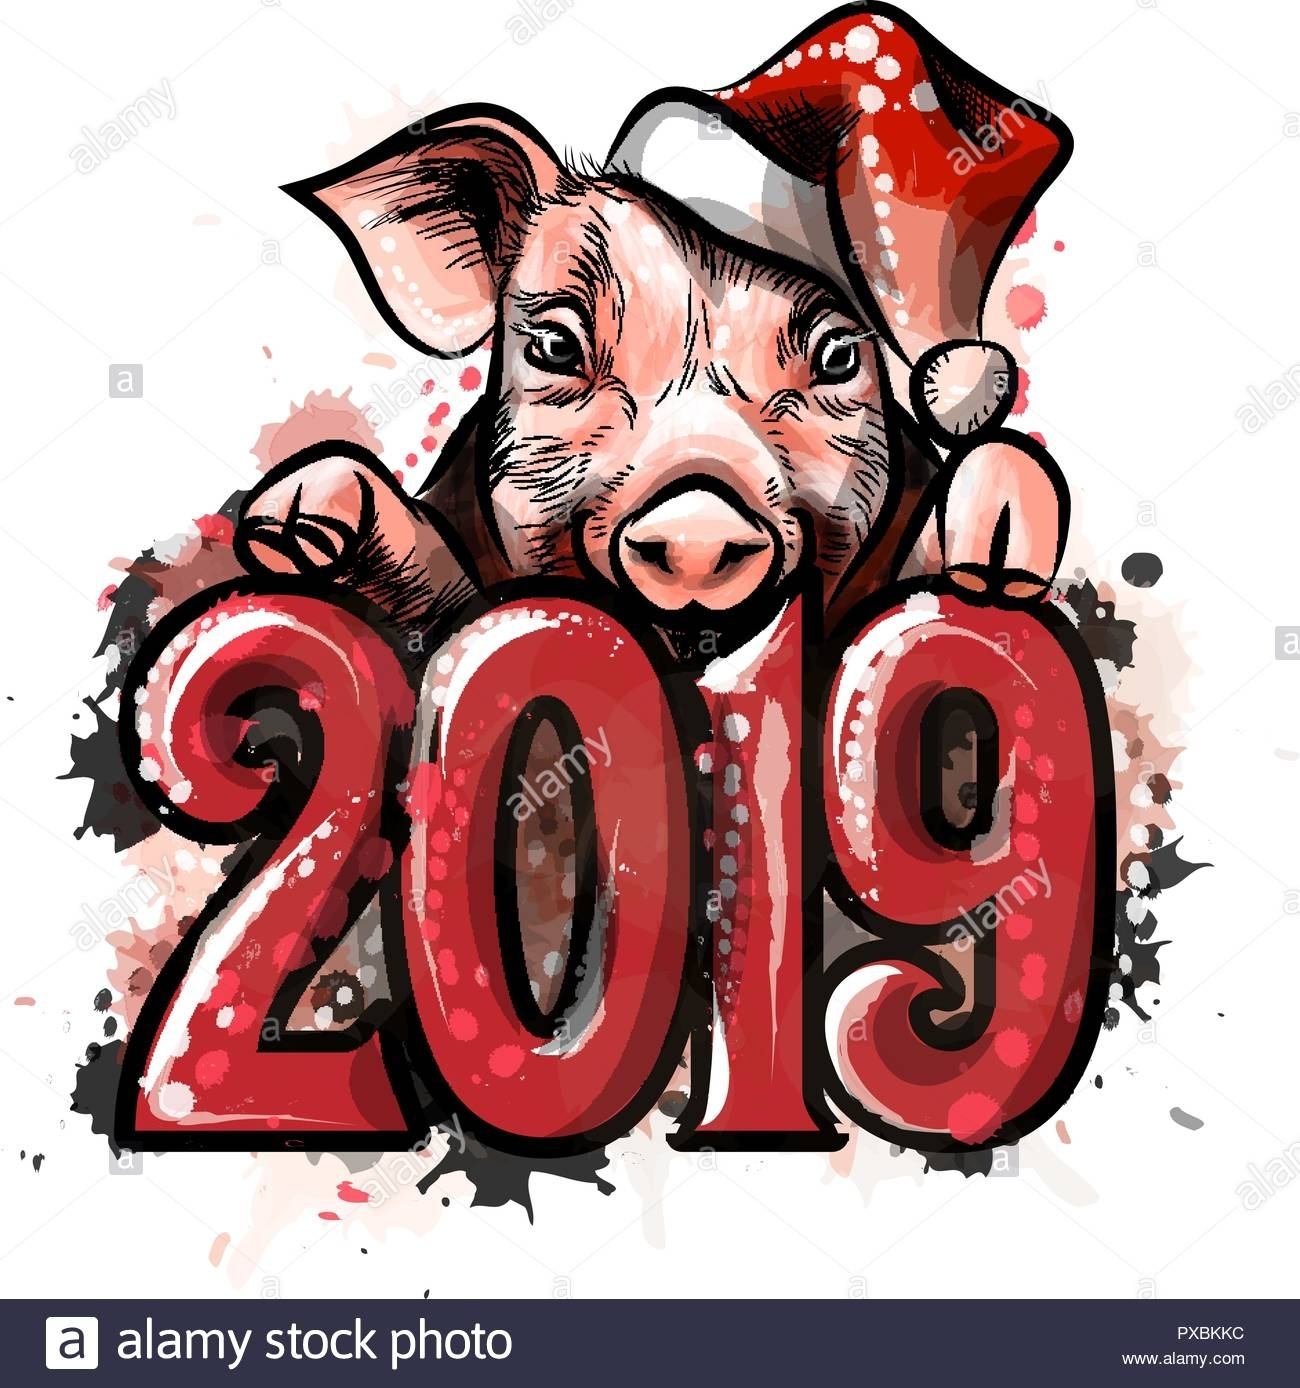 Chinese Zodiac Sign Year Of Pig, Happy Chinese New Year 2019